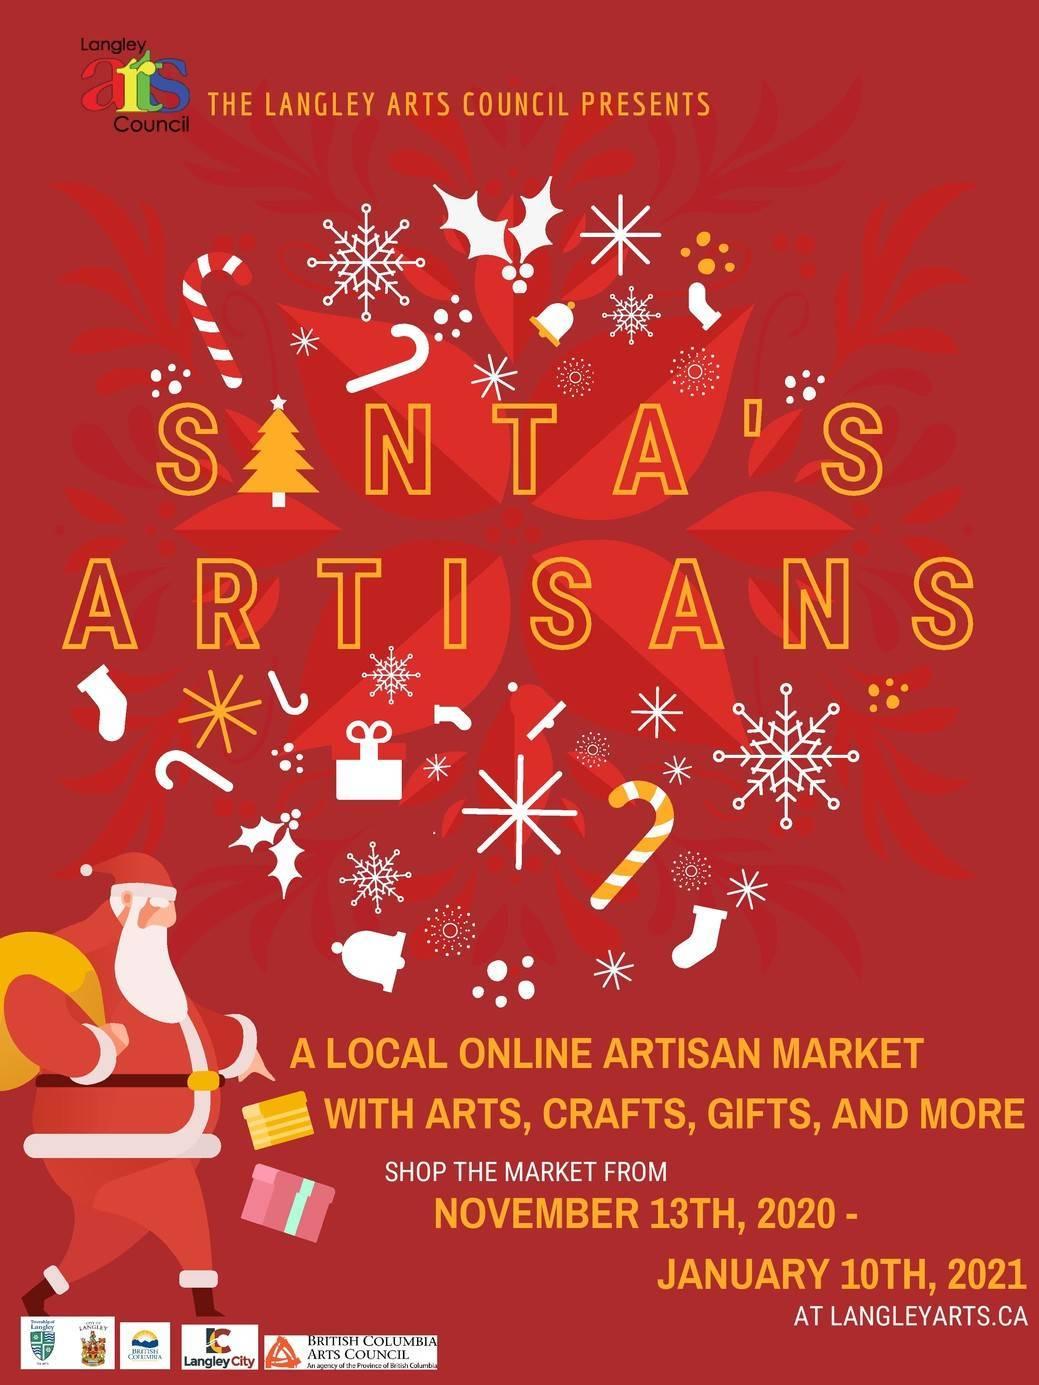 Langley Arts Council's online Christmas market runs from Nov. 13 to Jan. 10. (Langley Arts Council/Special to The Star)